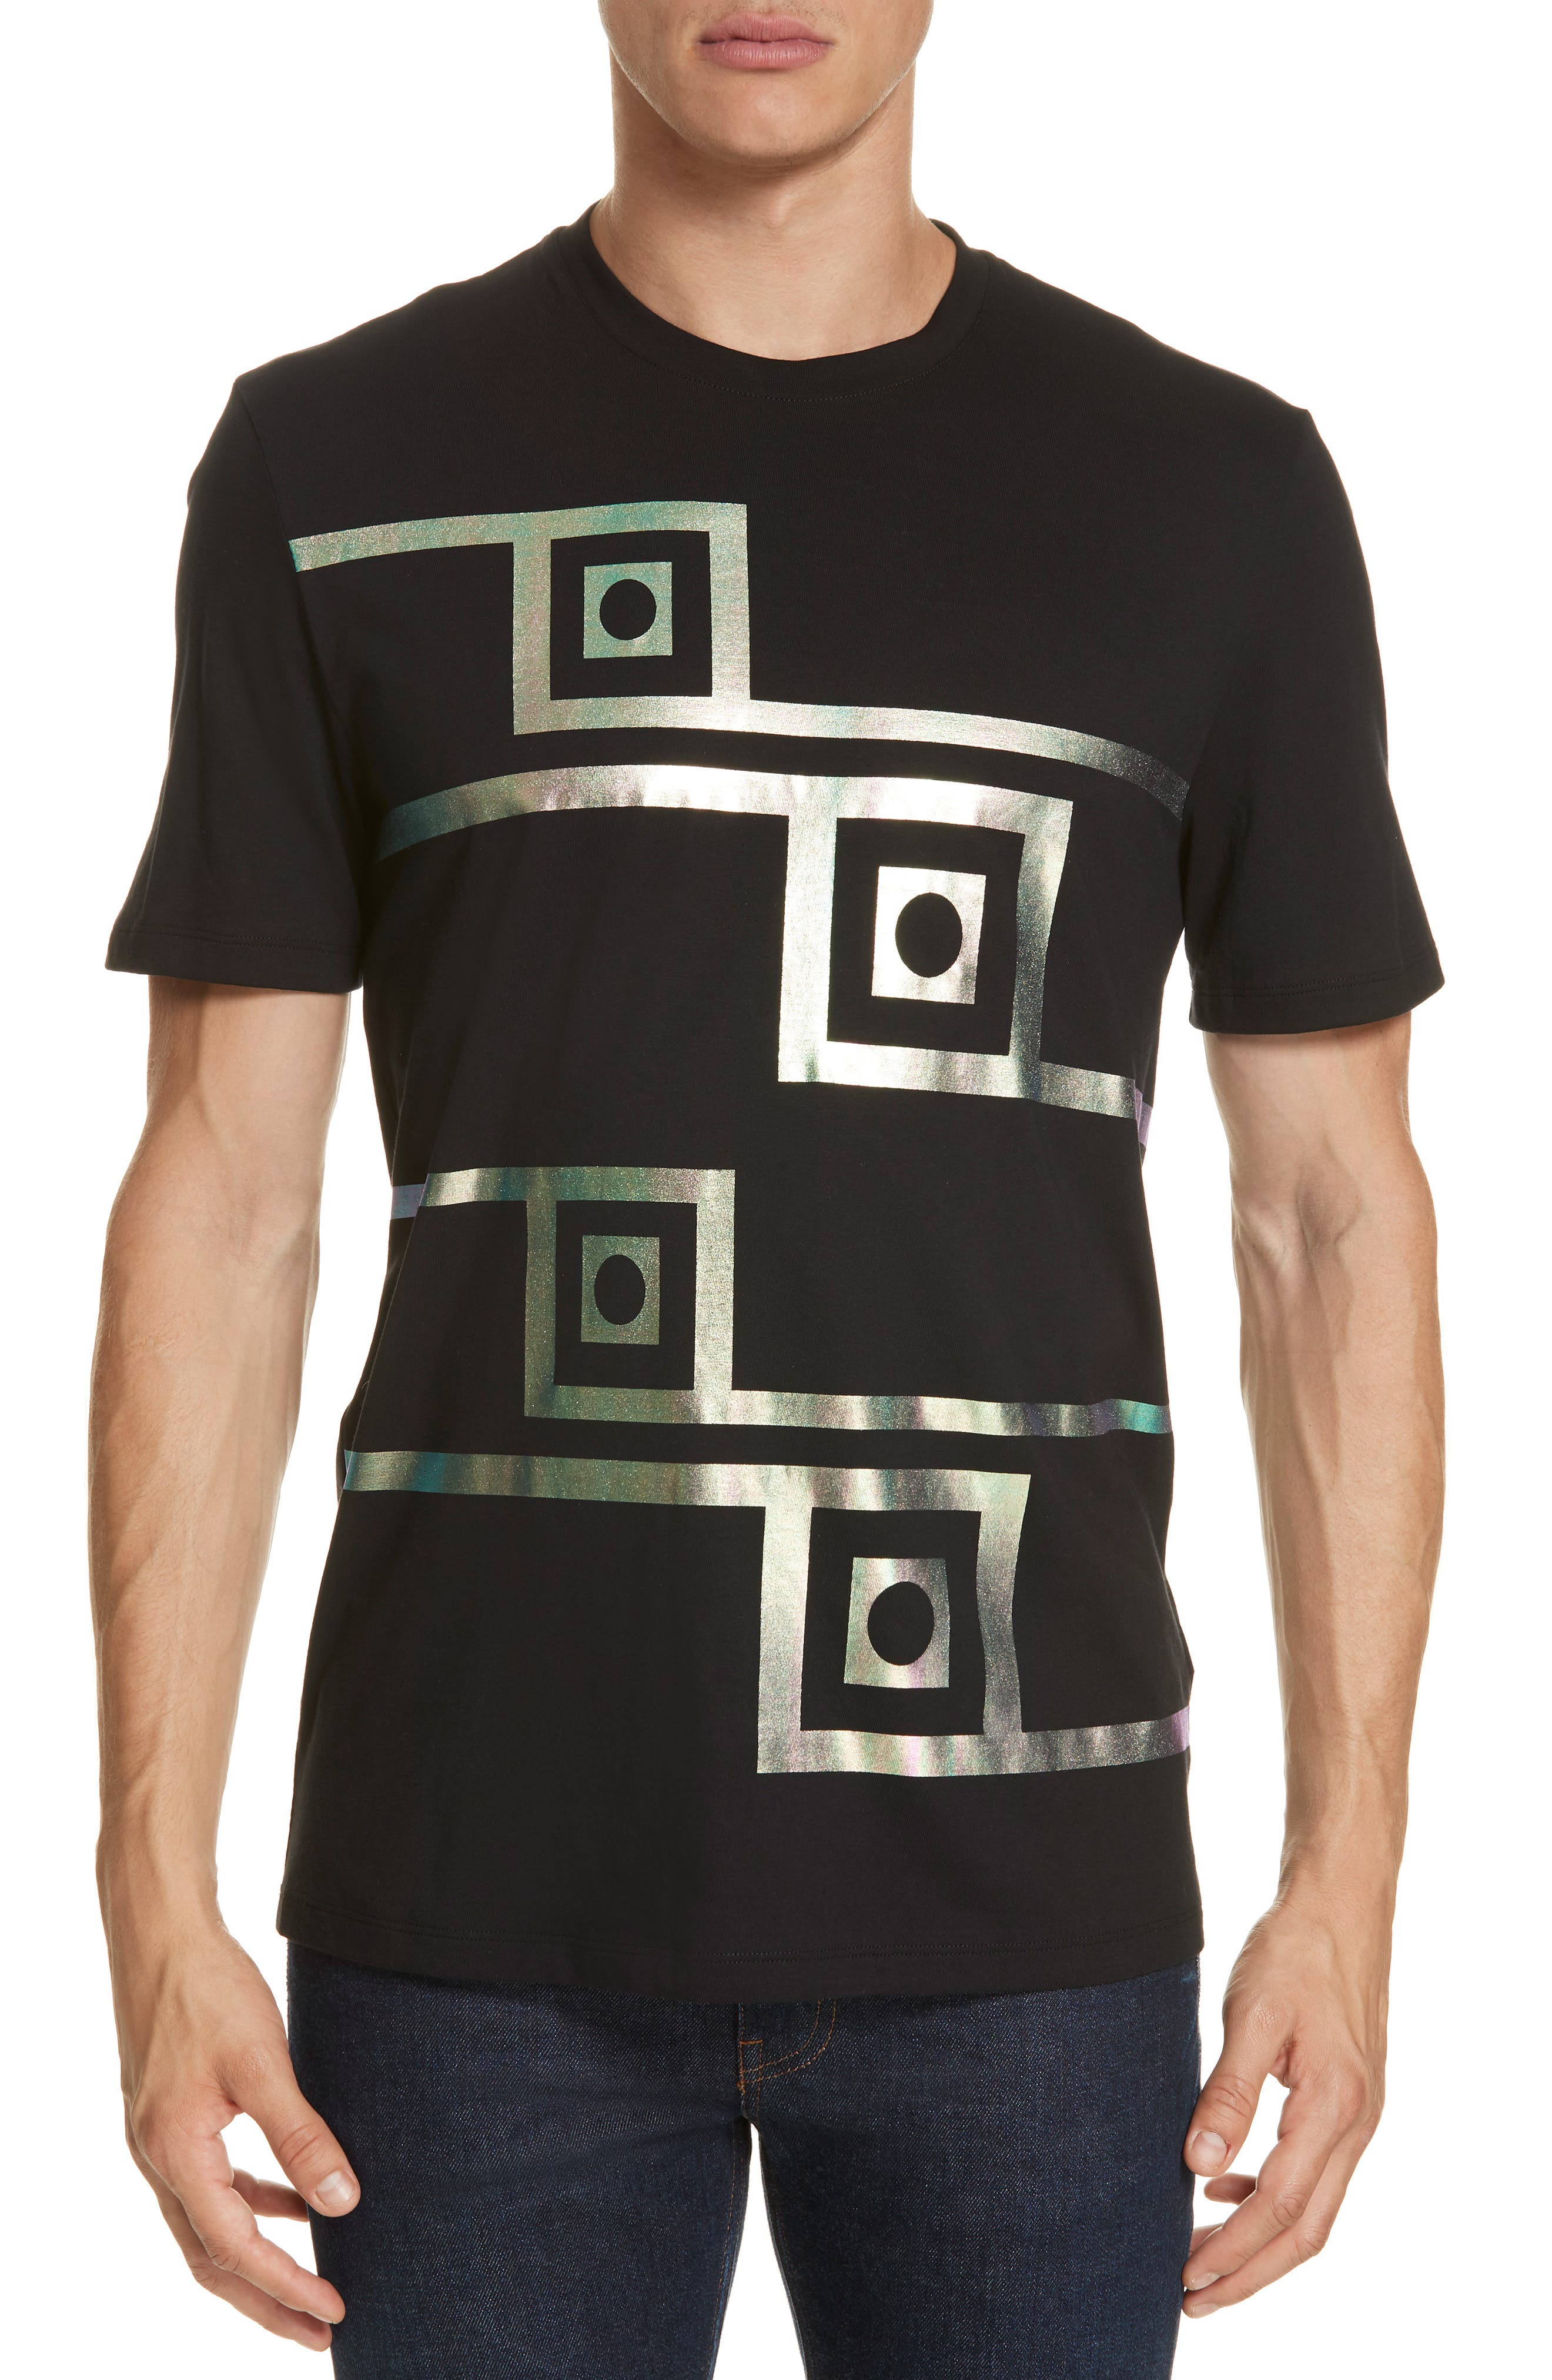 VERSACE COLLECTION Iridescent Graphic T-Shirt, Main, color, BLACK/ PAINT